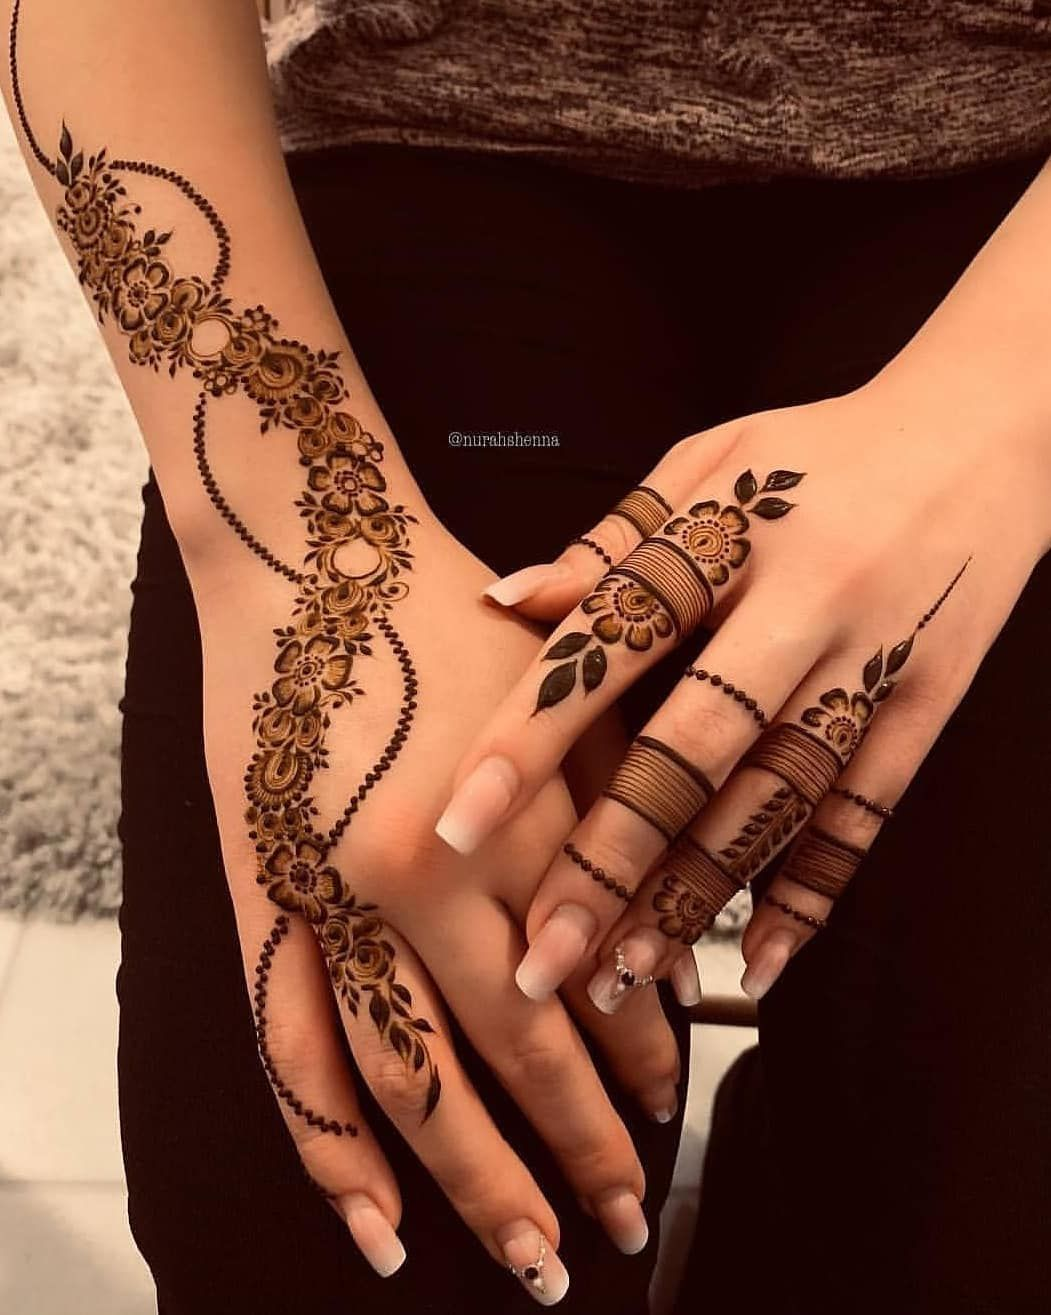 Dimple Queen On Instagram Mehndi Designs Which One 1 5 Follow